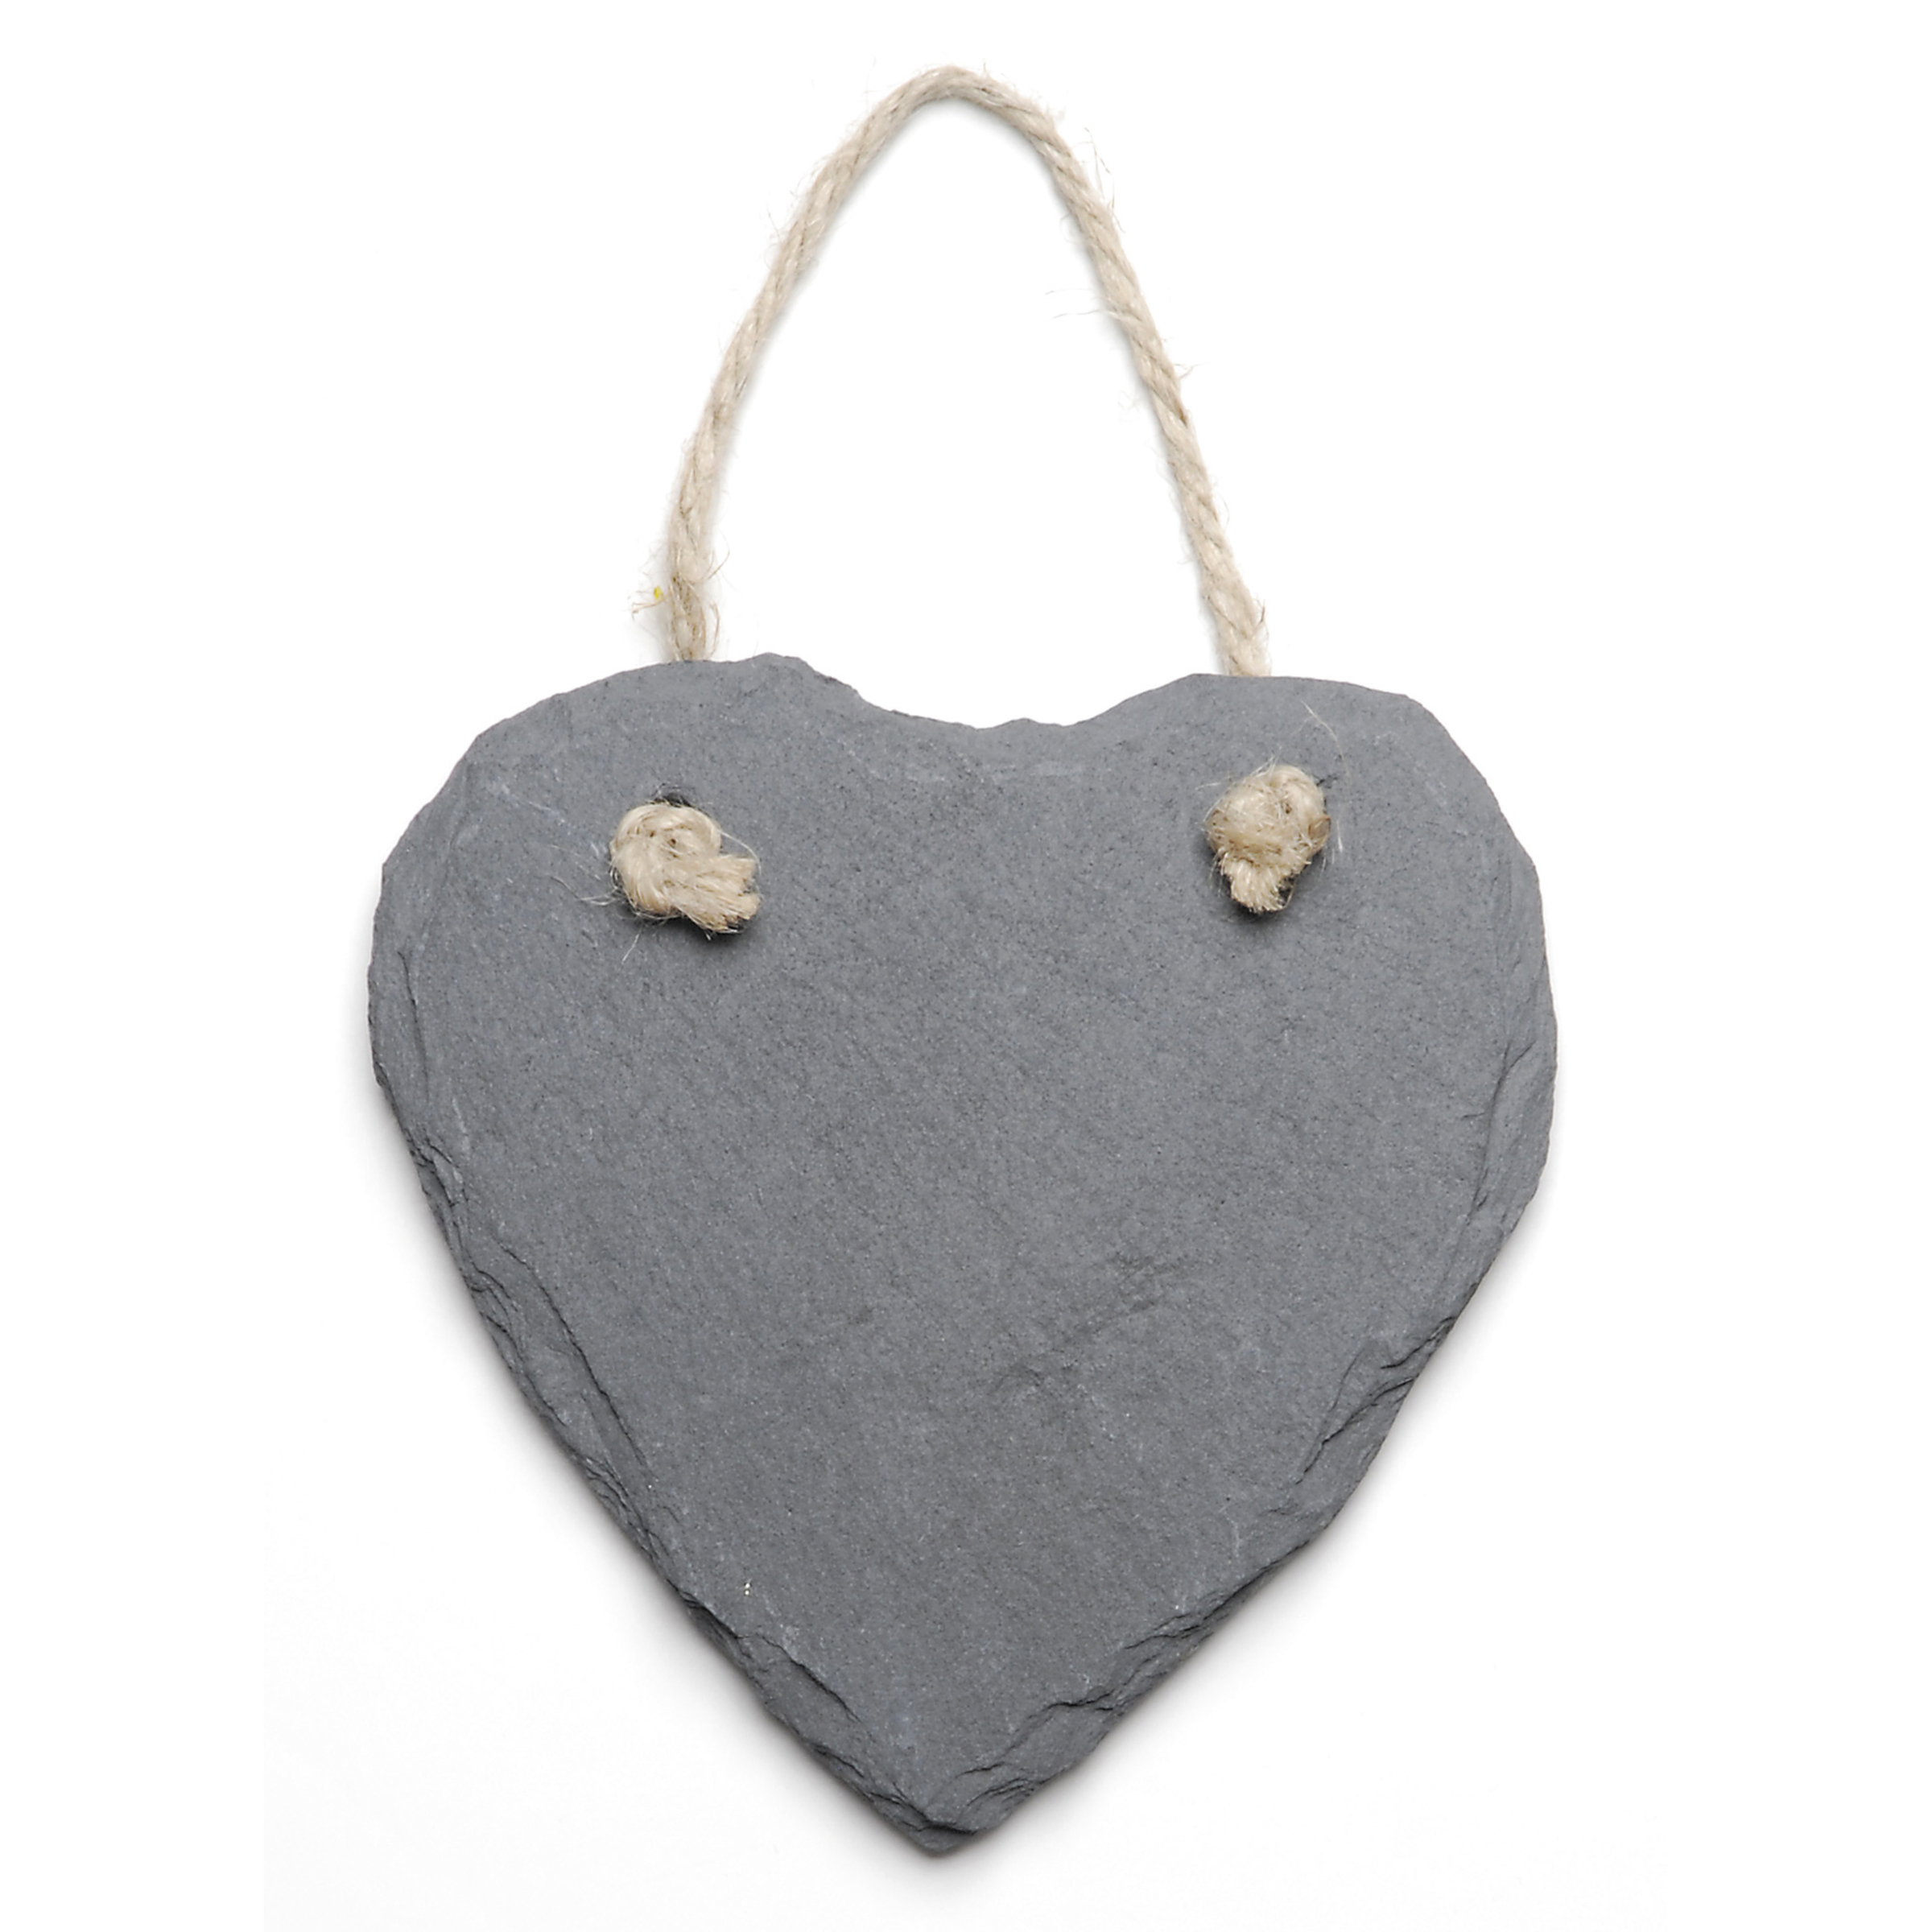 Slate Heart Ornament With Jute Hanger